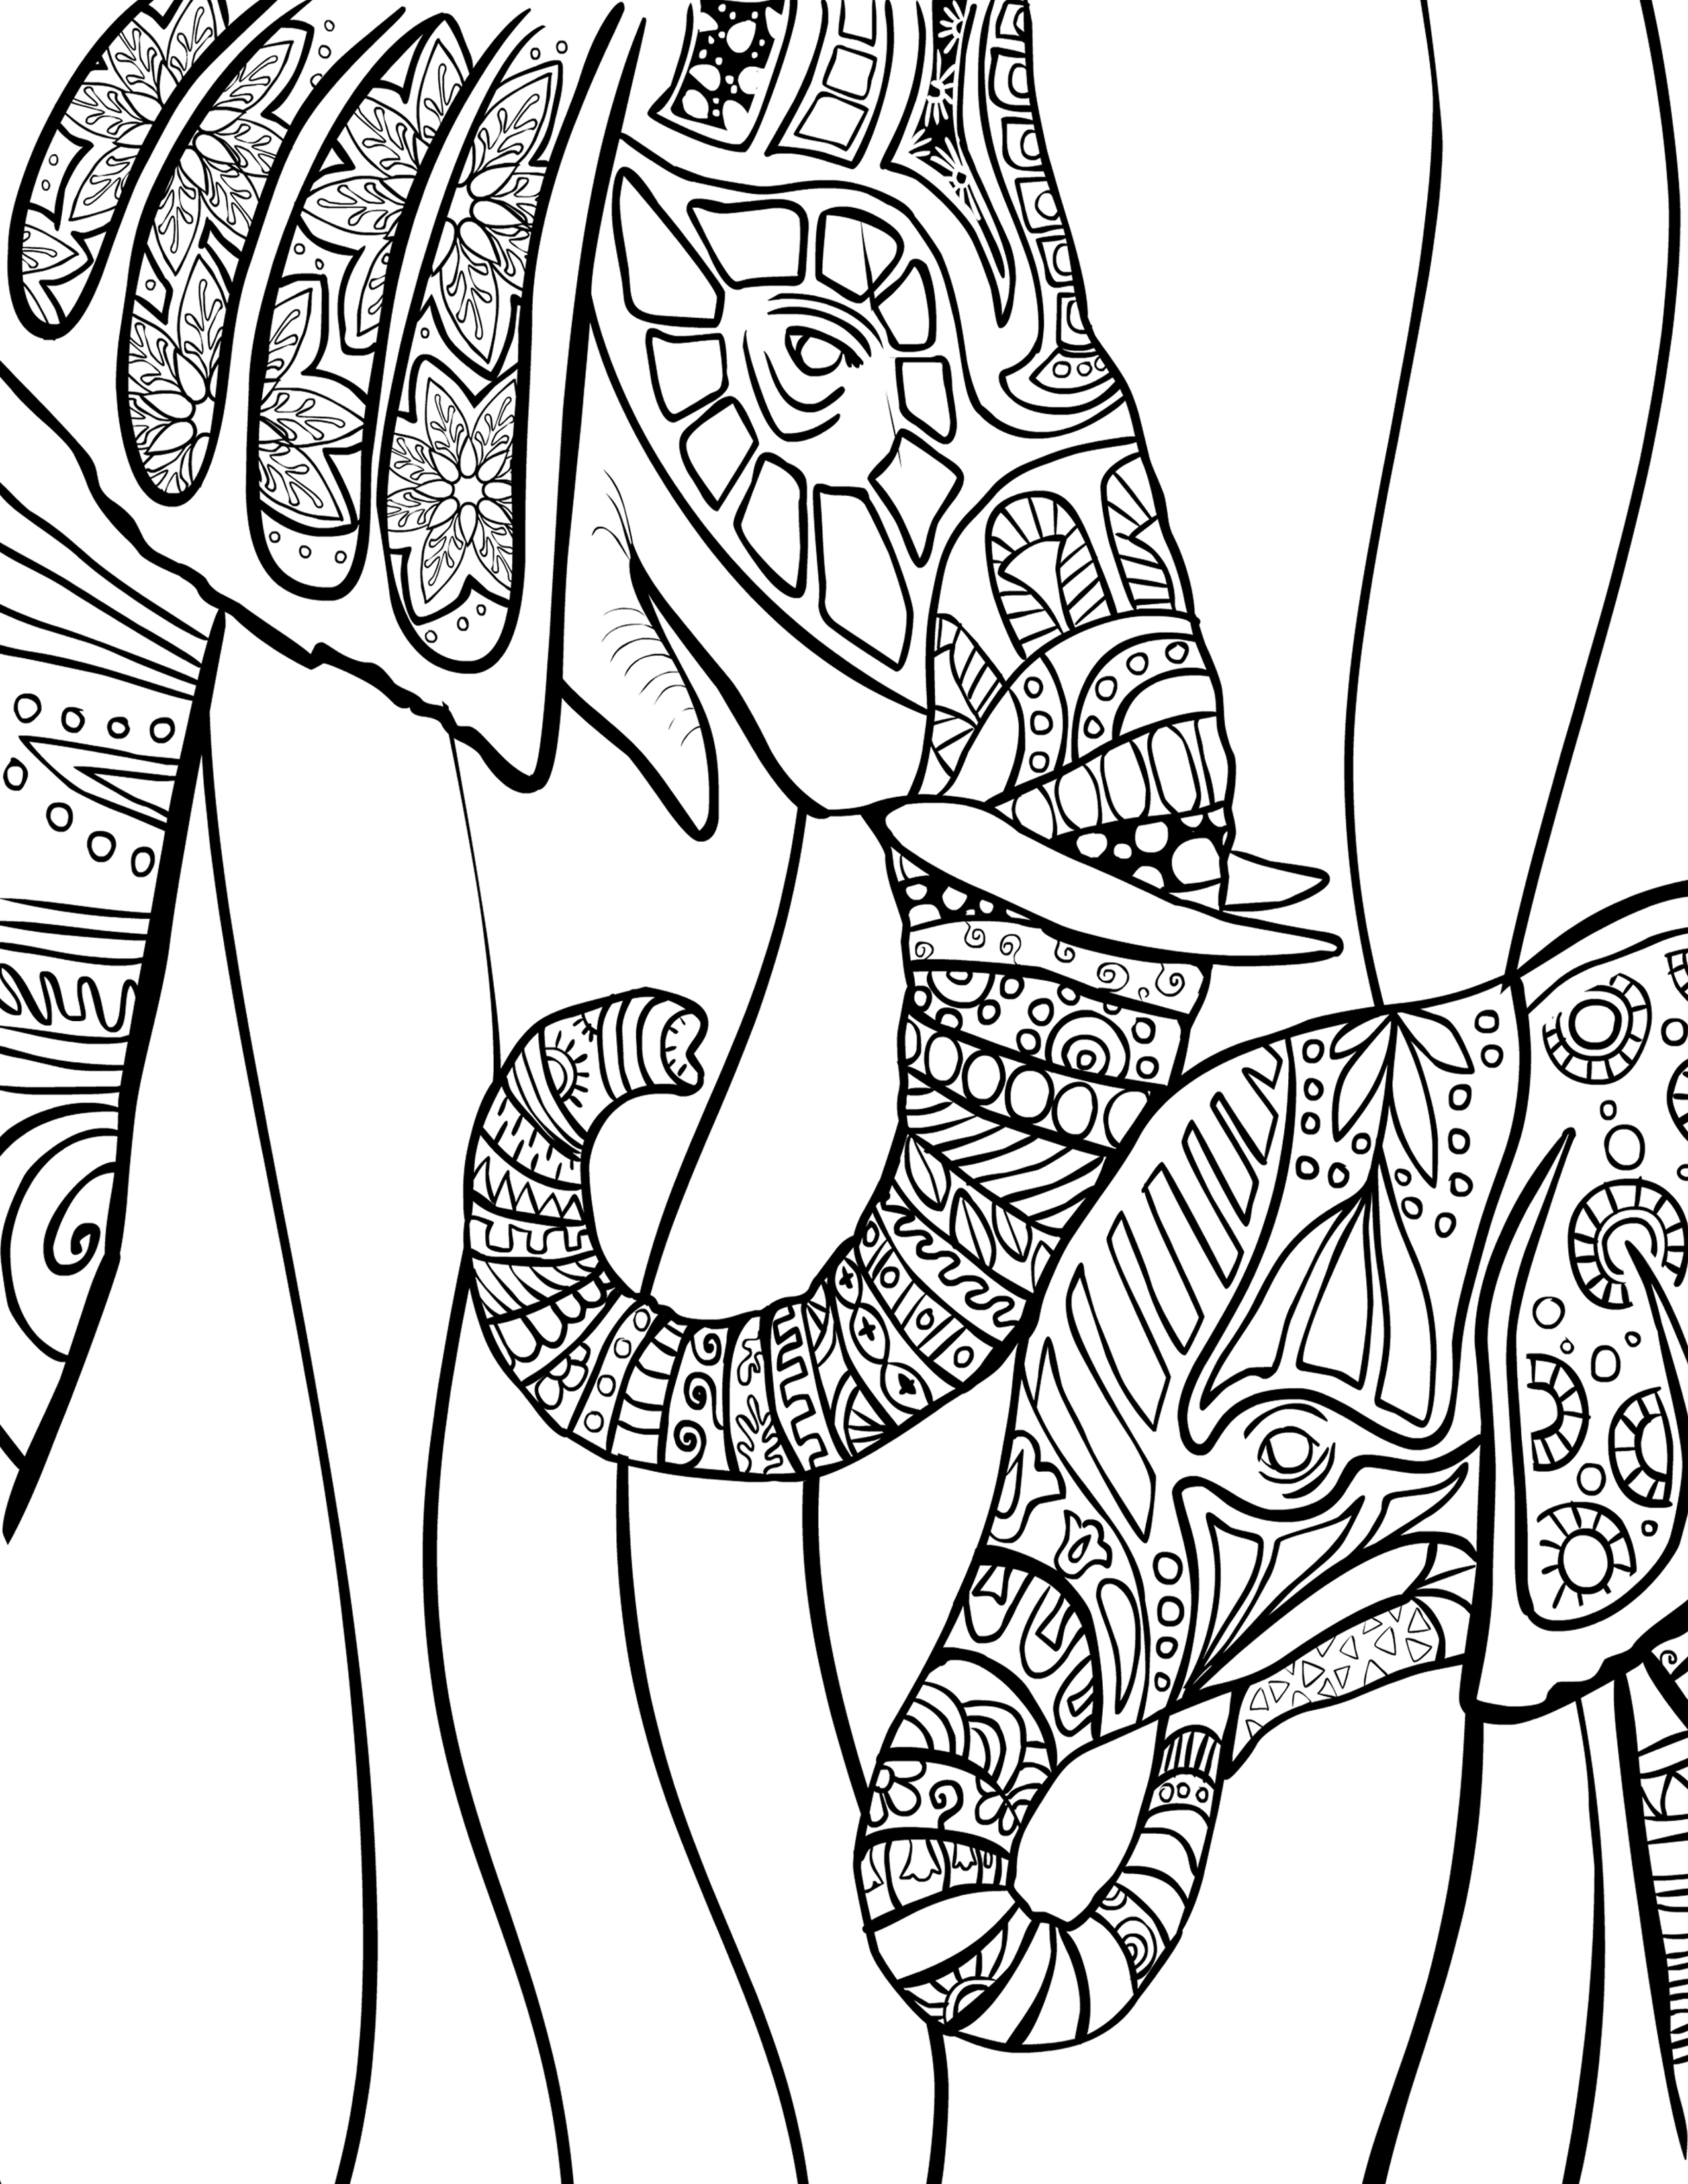 FREE ADULT COLORING PAGES On Pinterest